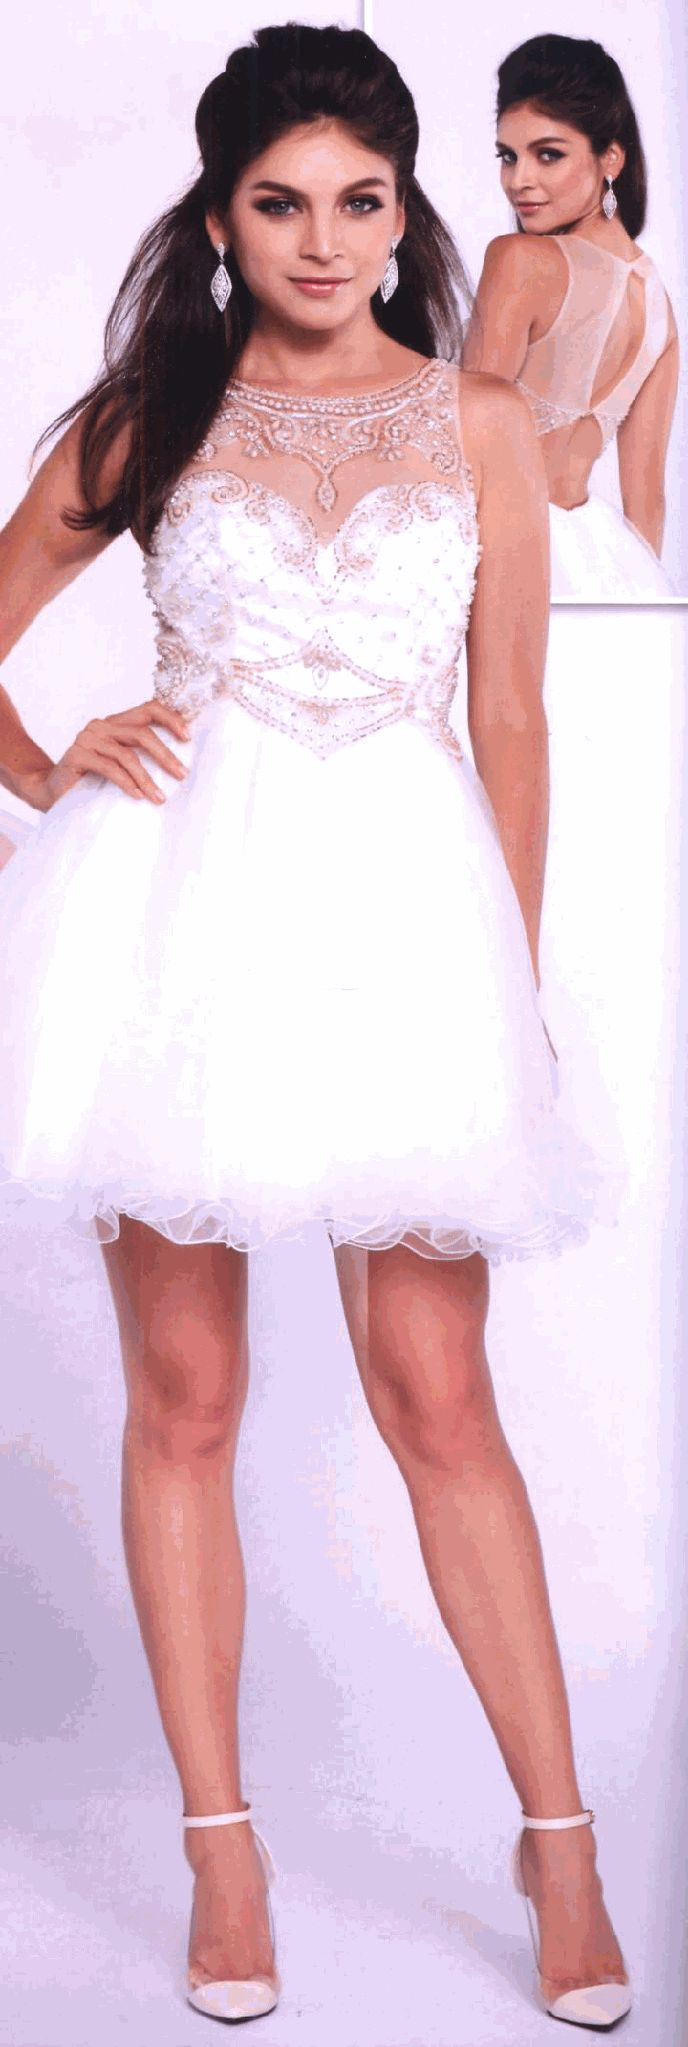 under for prom dresses eveningdresses ball dre wedding dress under $ Homecoming Dresses Sweet 16 Dresses UNDER BR ana BR Sheer